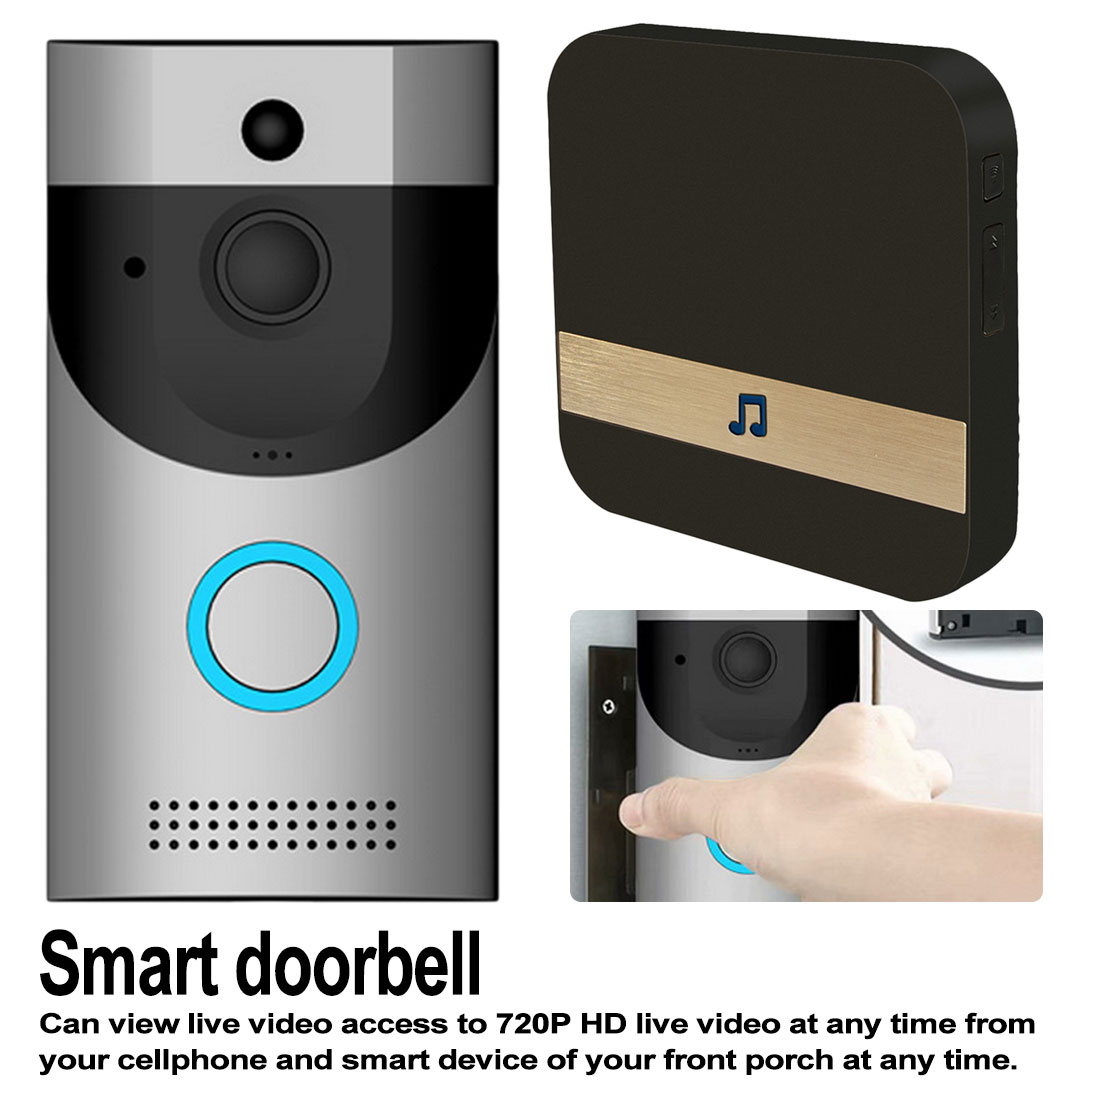 Wireless WIFI Doorbell B30 IP65 Waterproof Smart Video Door Chime 720P Wireless Intercom FIR Alarm IR Night Vision IP Camera